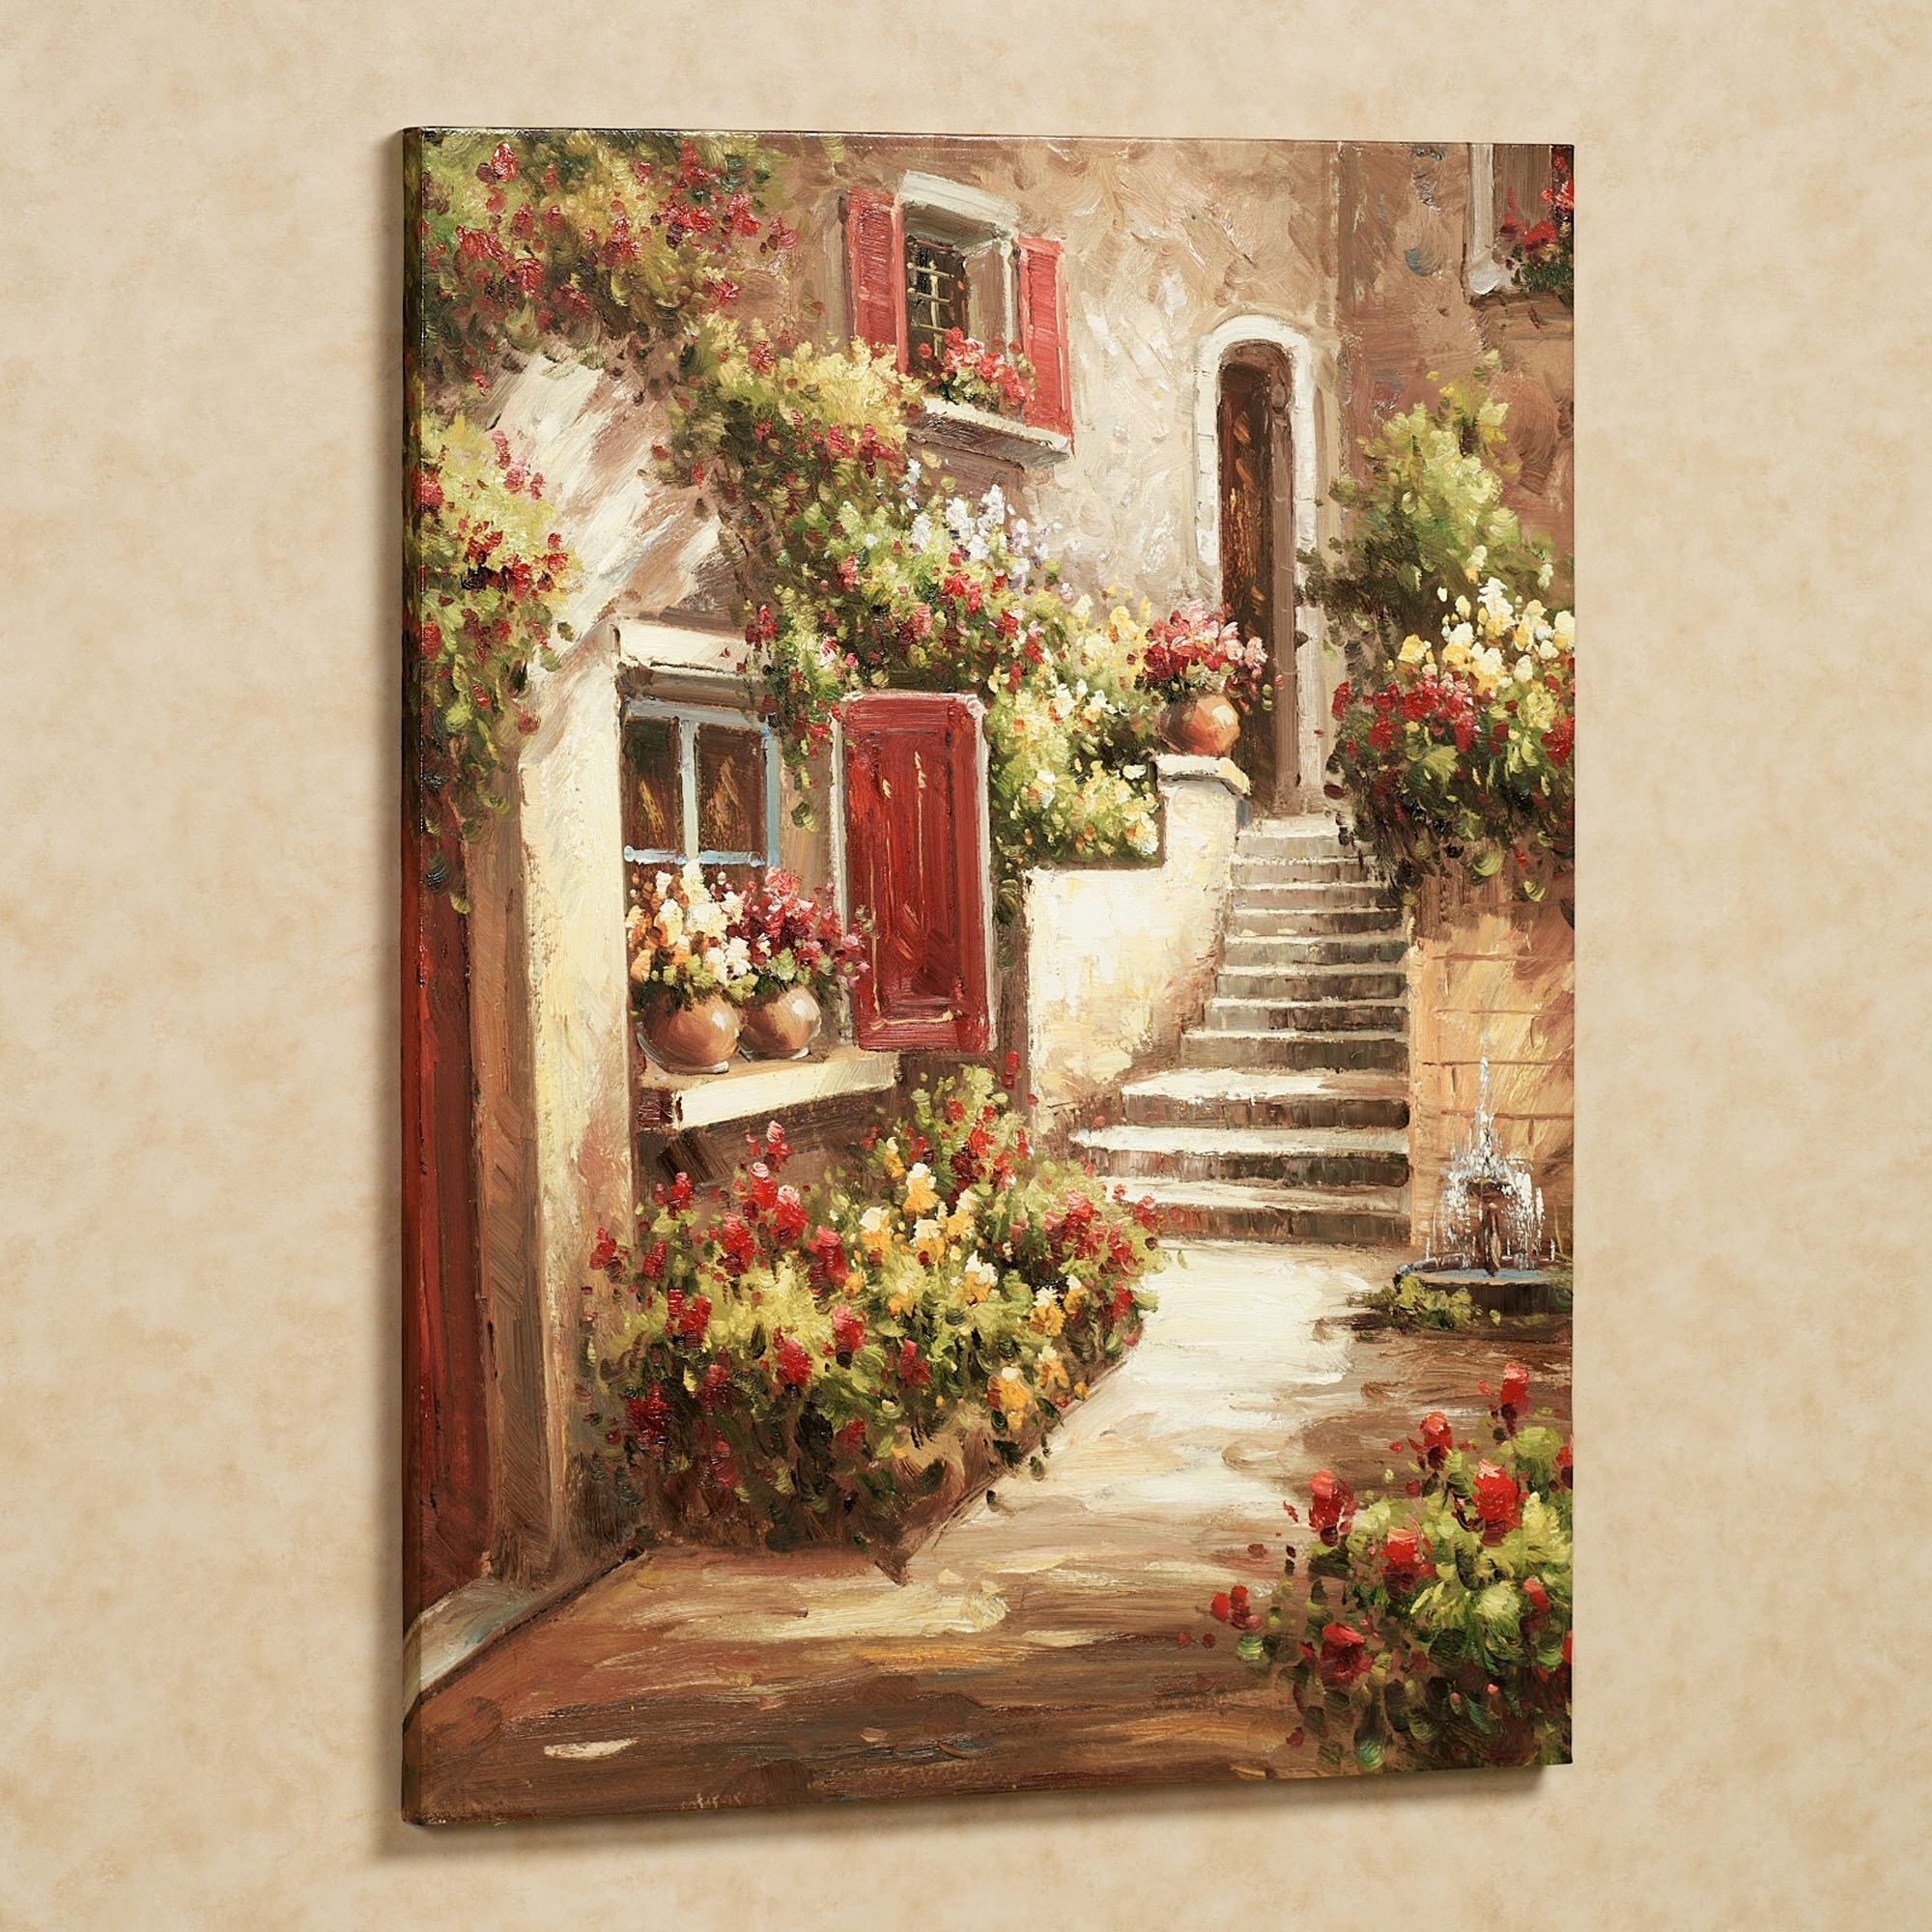 Canvas Wall Art | Touch Of Class Regarding Most Current Mountains Canvas Wall Art (View 9 of 15)